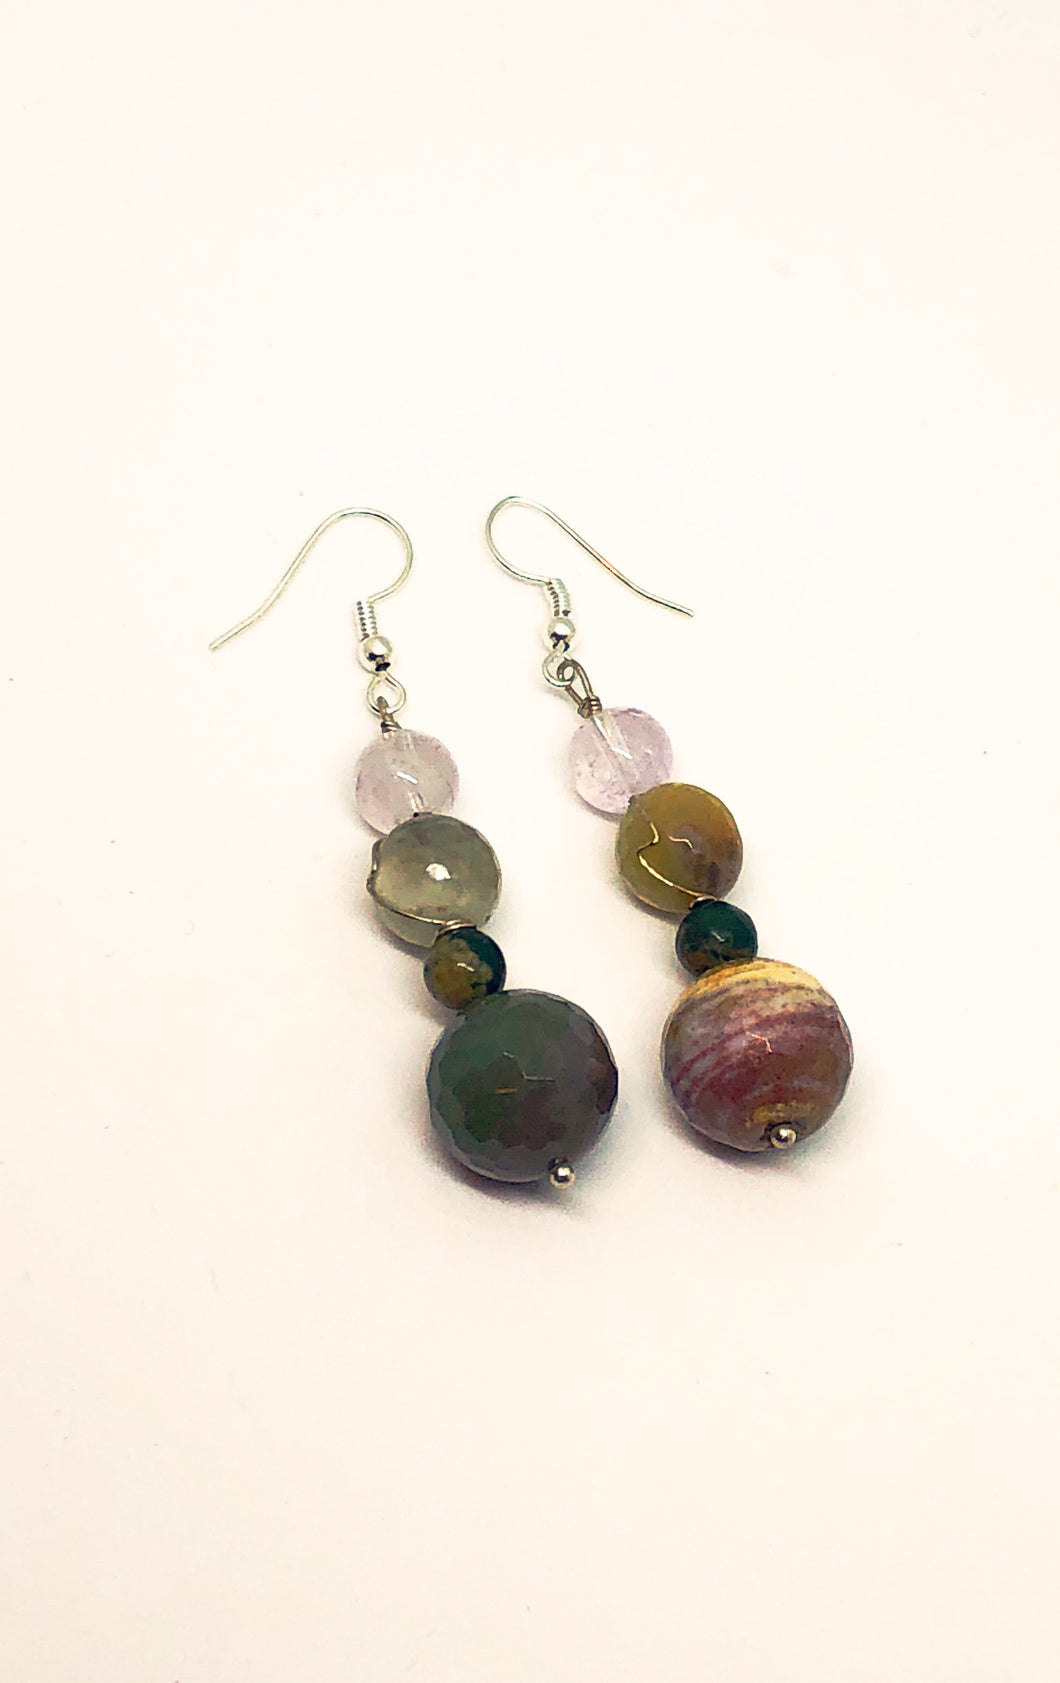 Earrings with  Ocean jasper, Amethyst and Jade beads